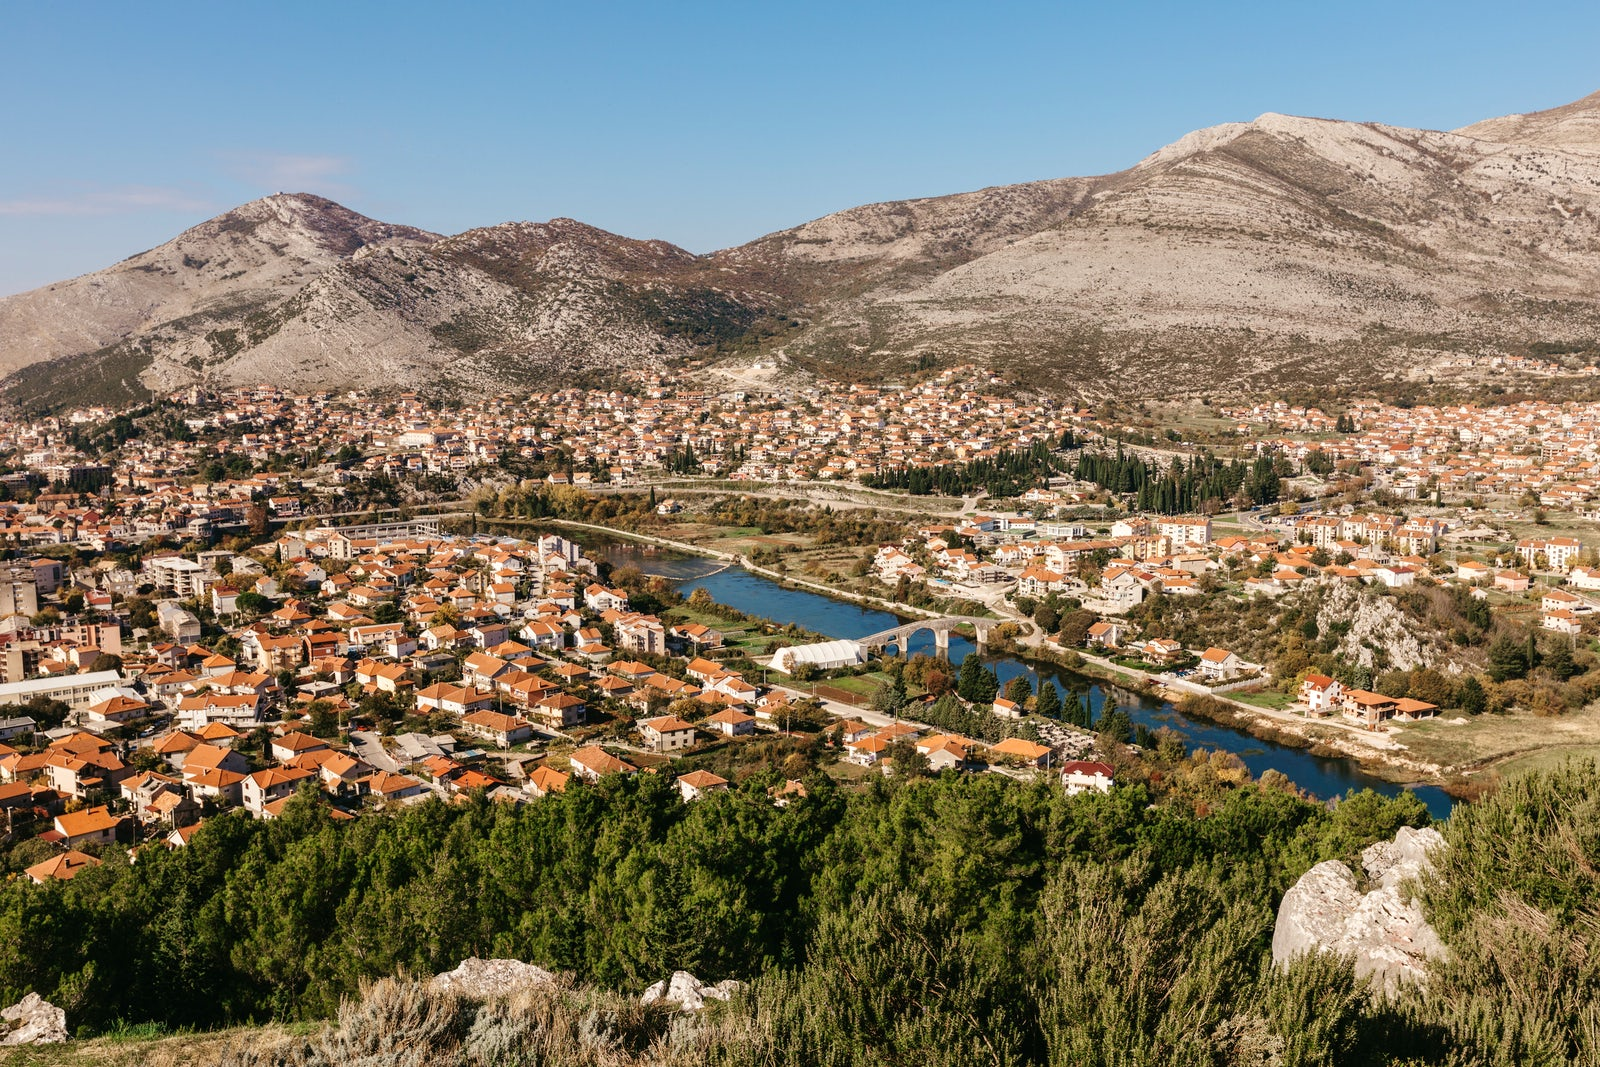 !i18n:nl:data.cities:trebinje.picture.caption